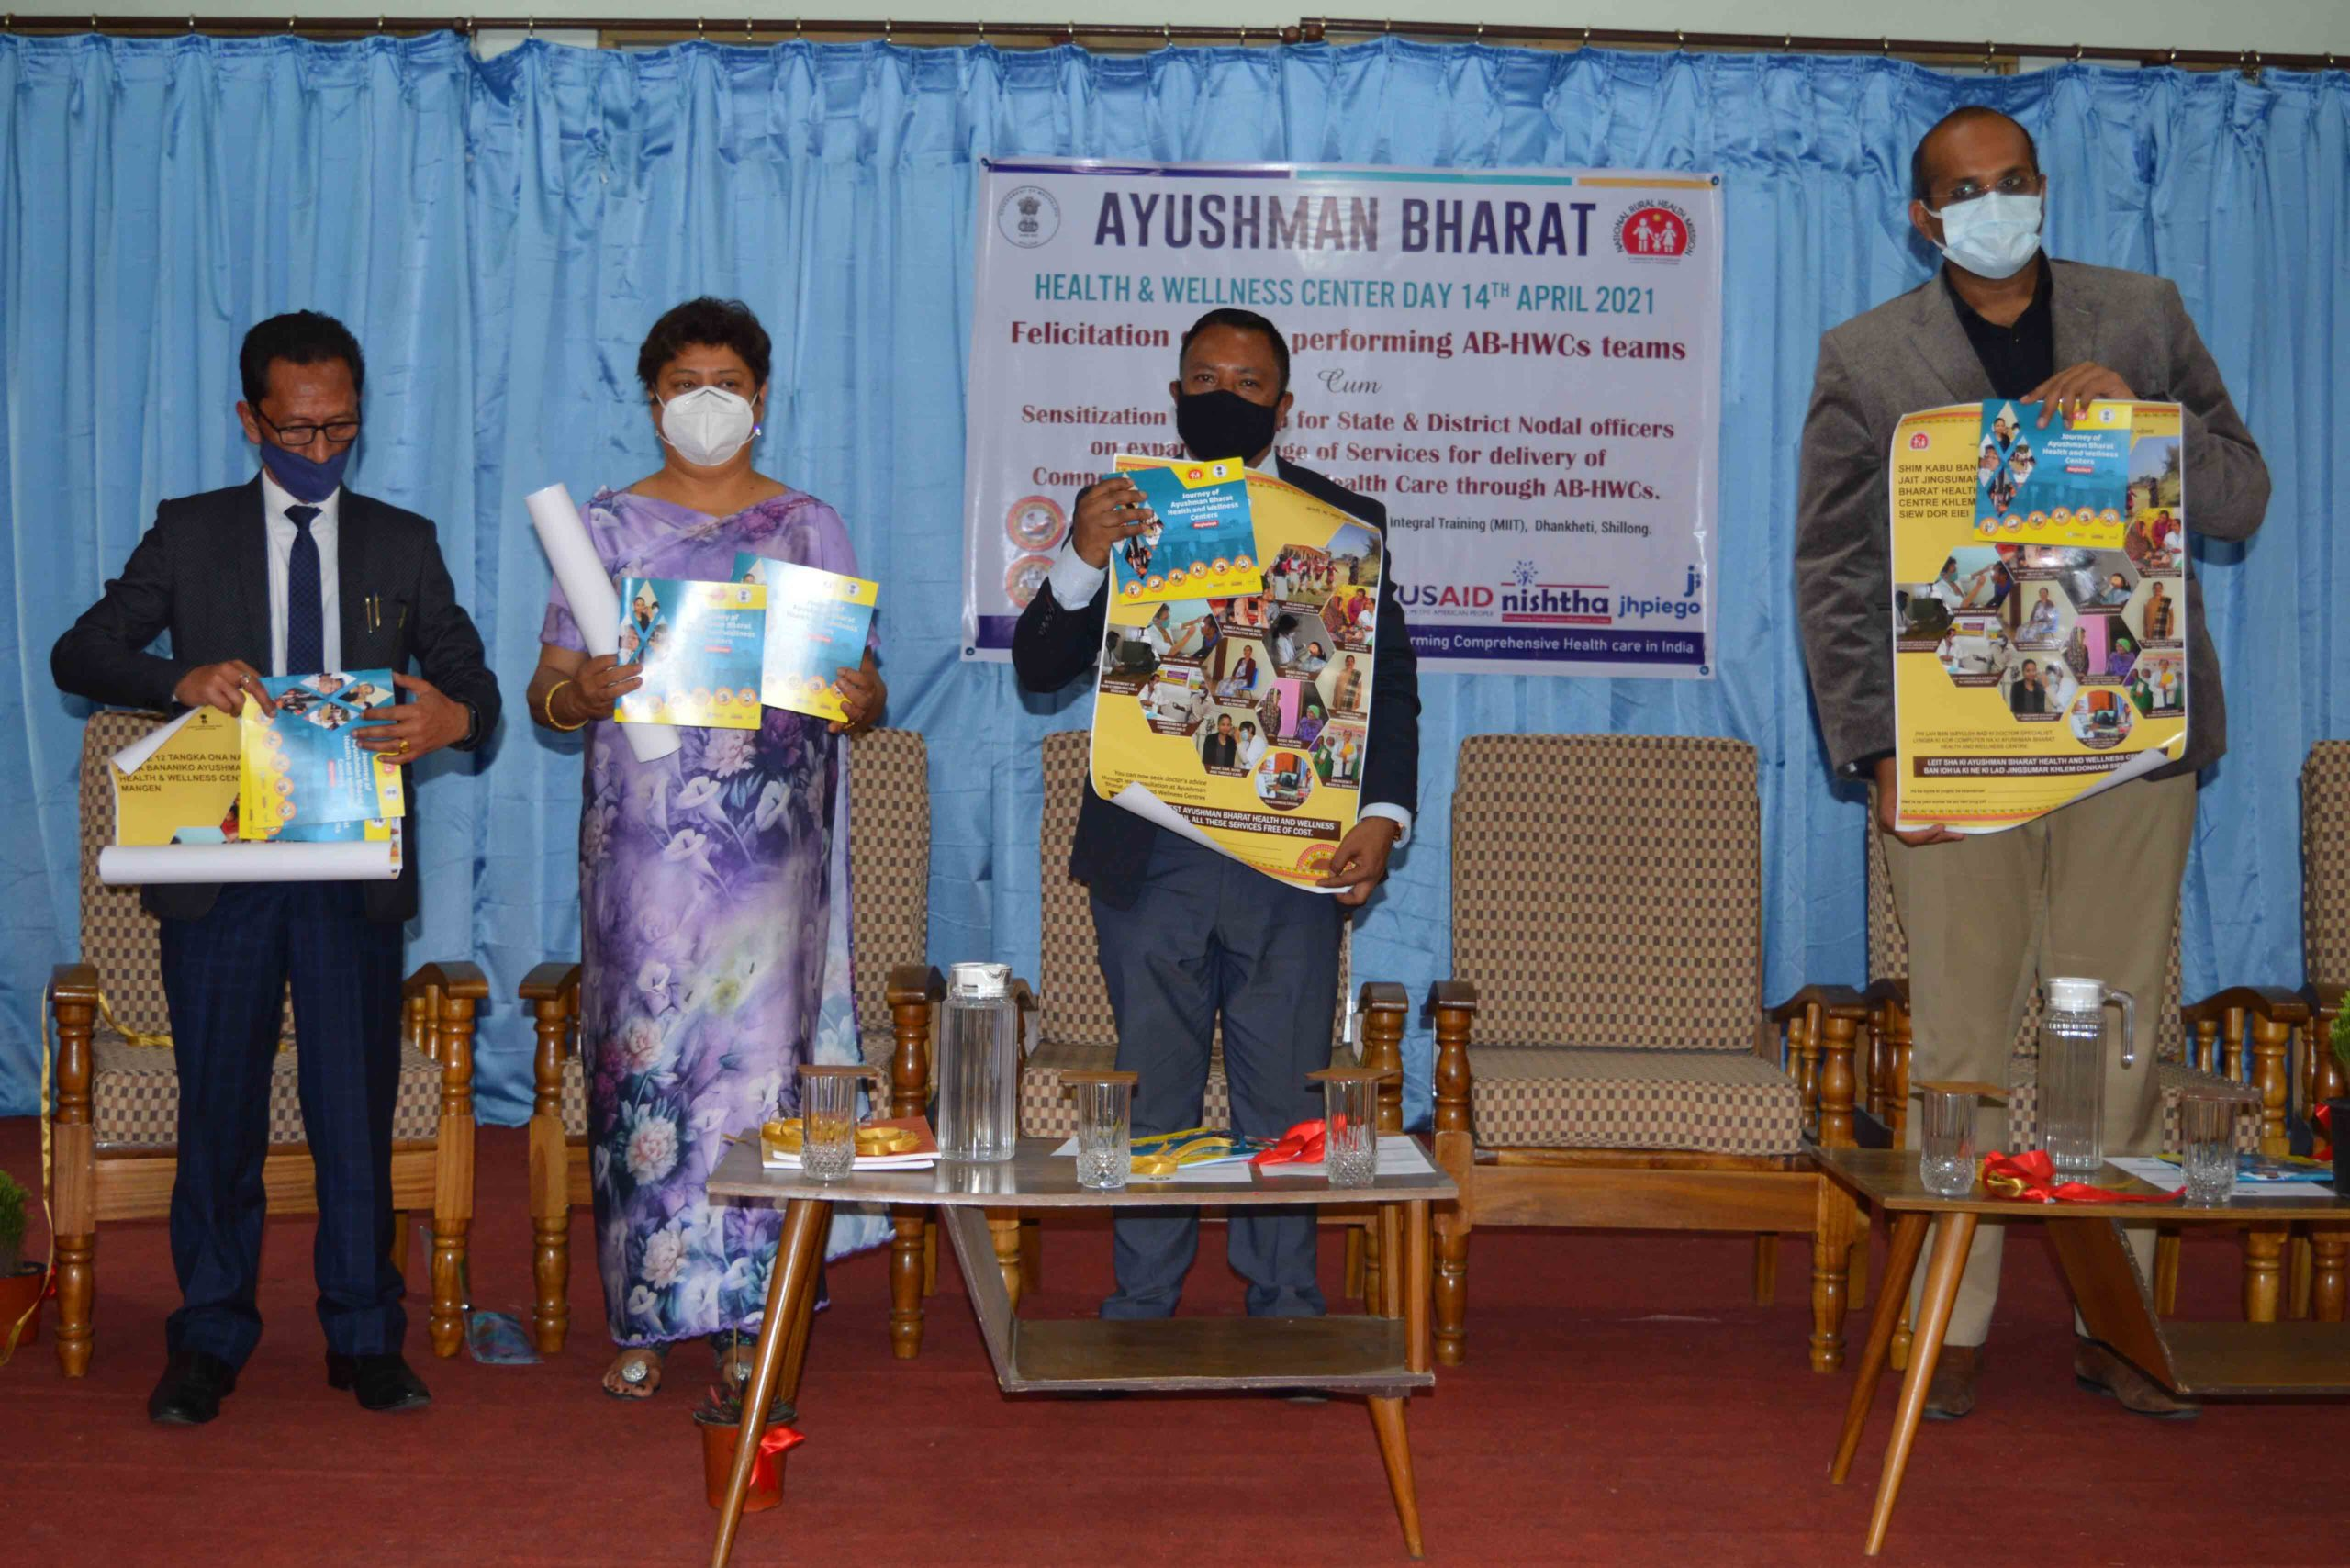 Ayushman Bharat - Health and Wellness Day observed